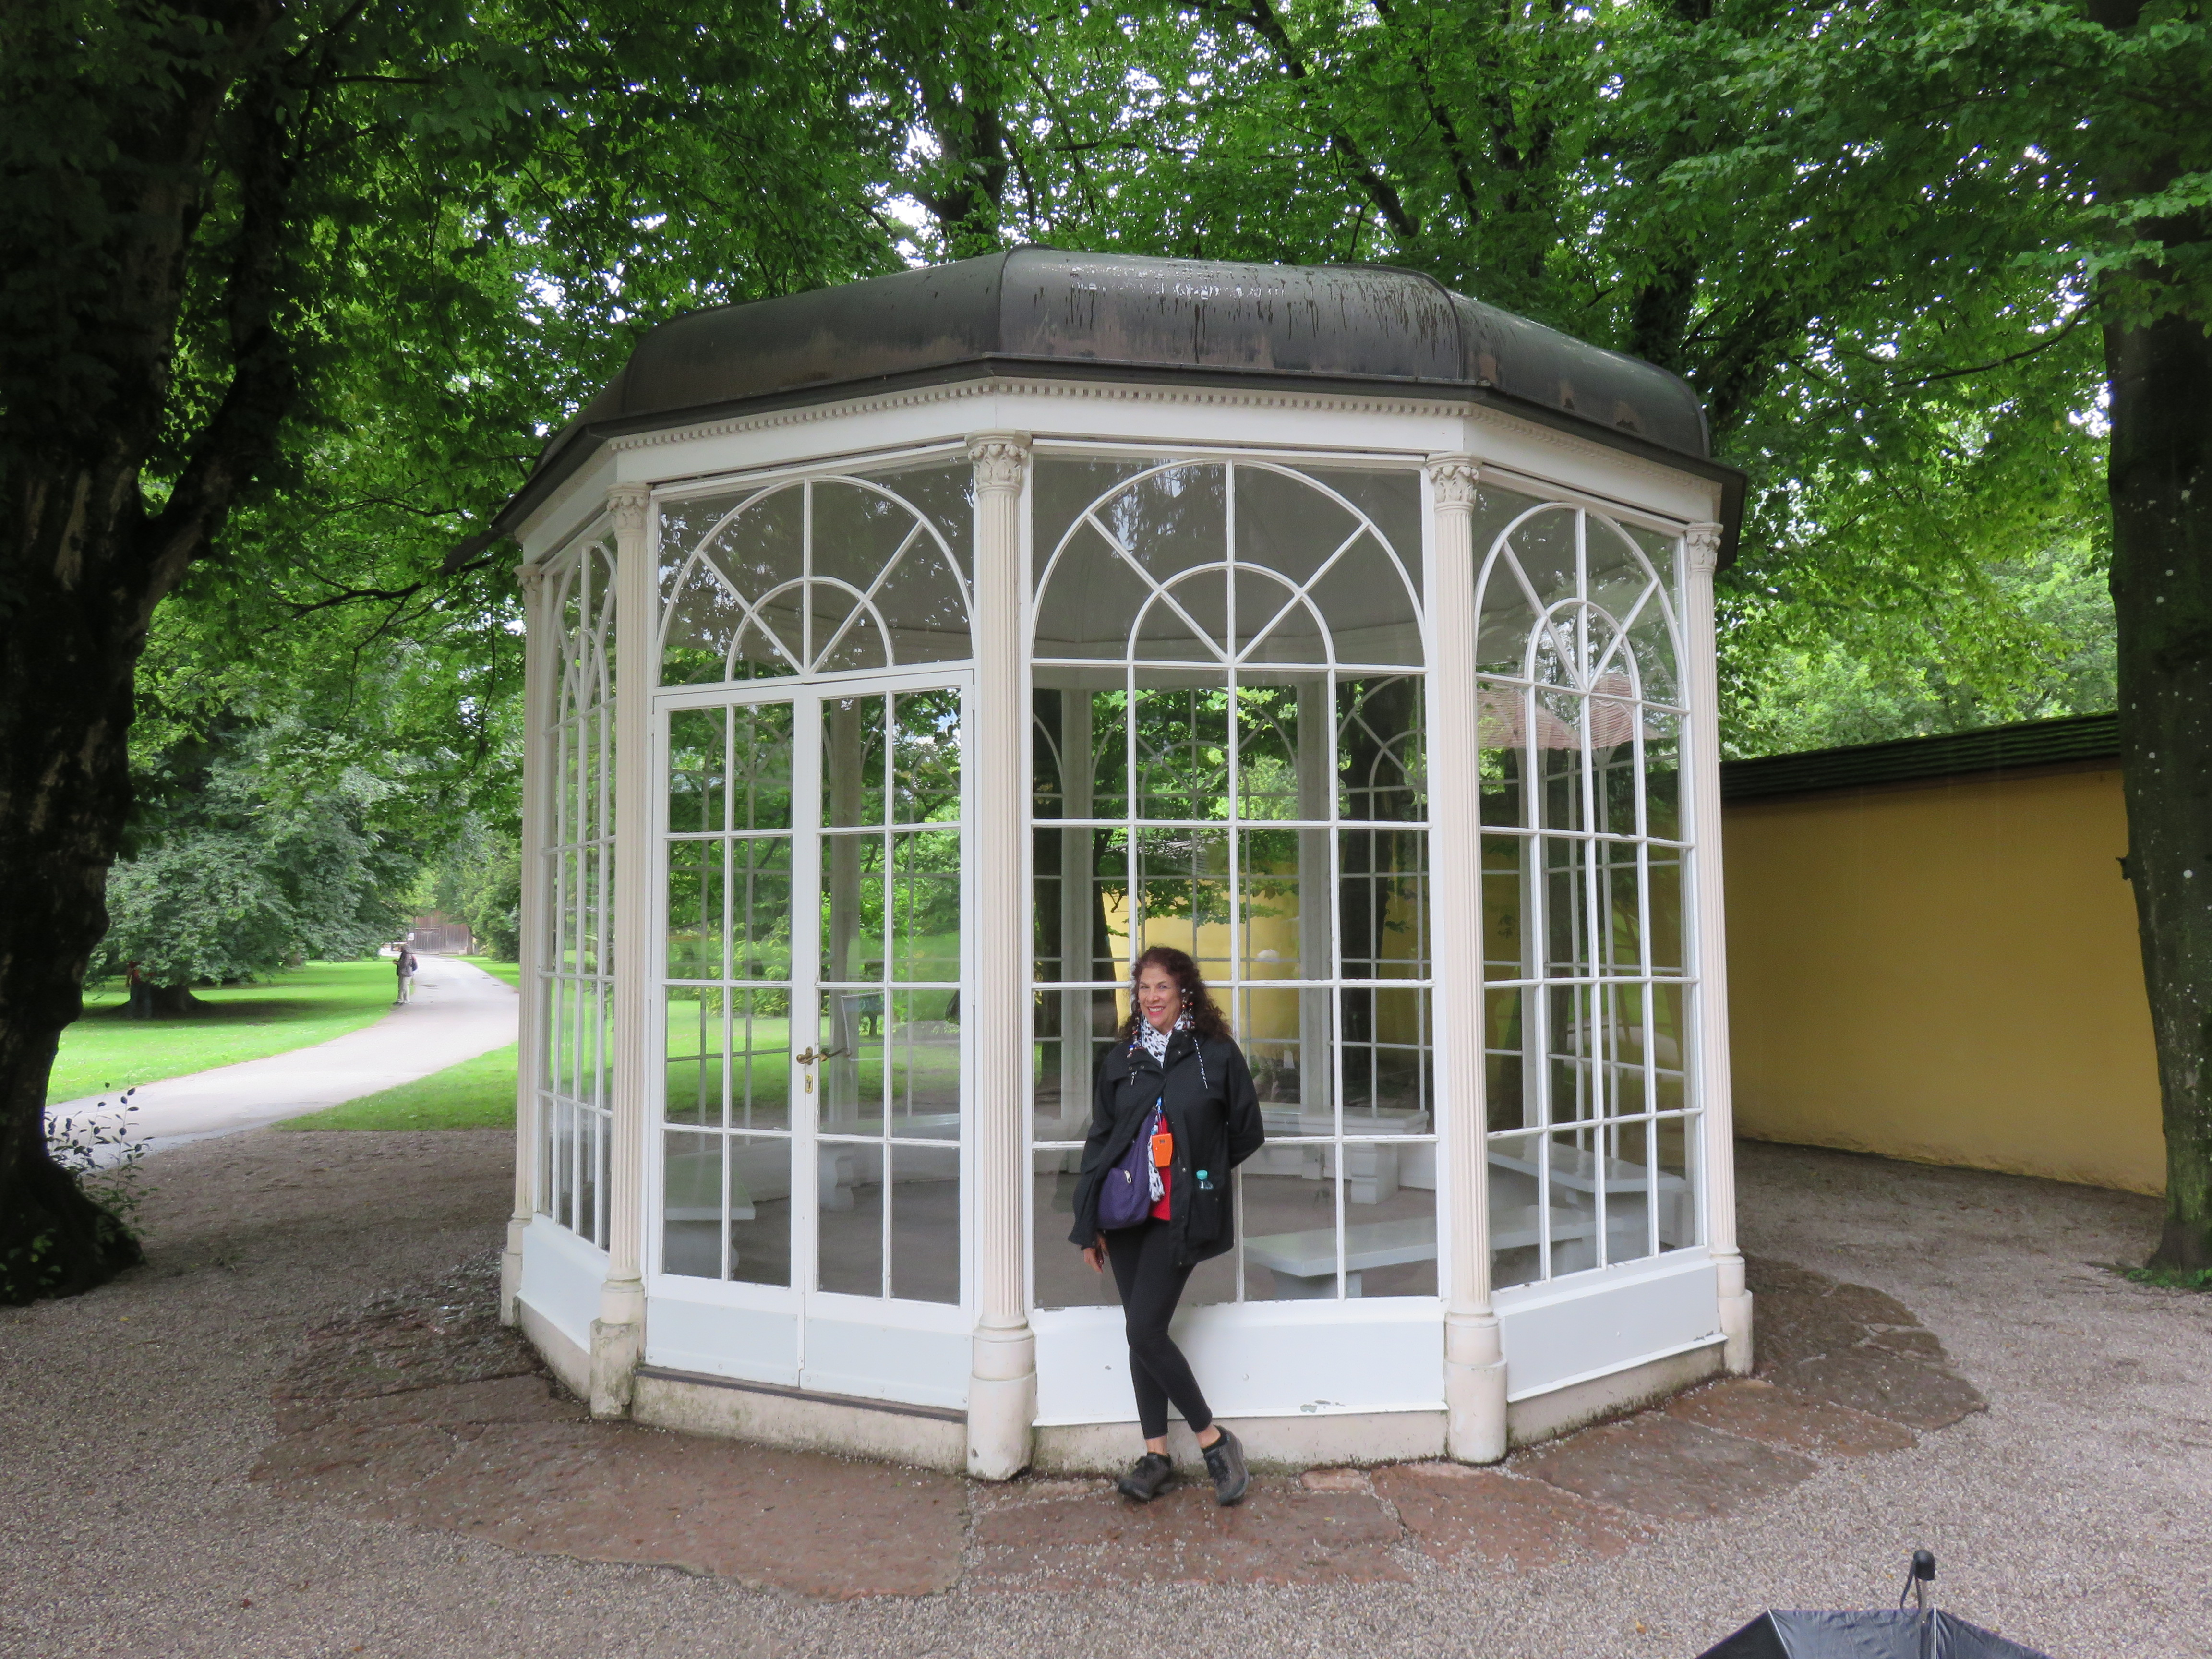 IMG_9382 This the gazebo where several scenes from Sound of Music were filmed. It's now at Hellbrunn Palace.